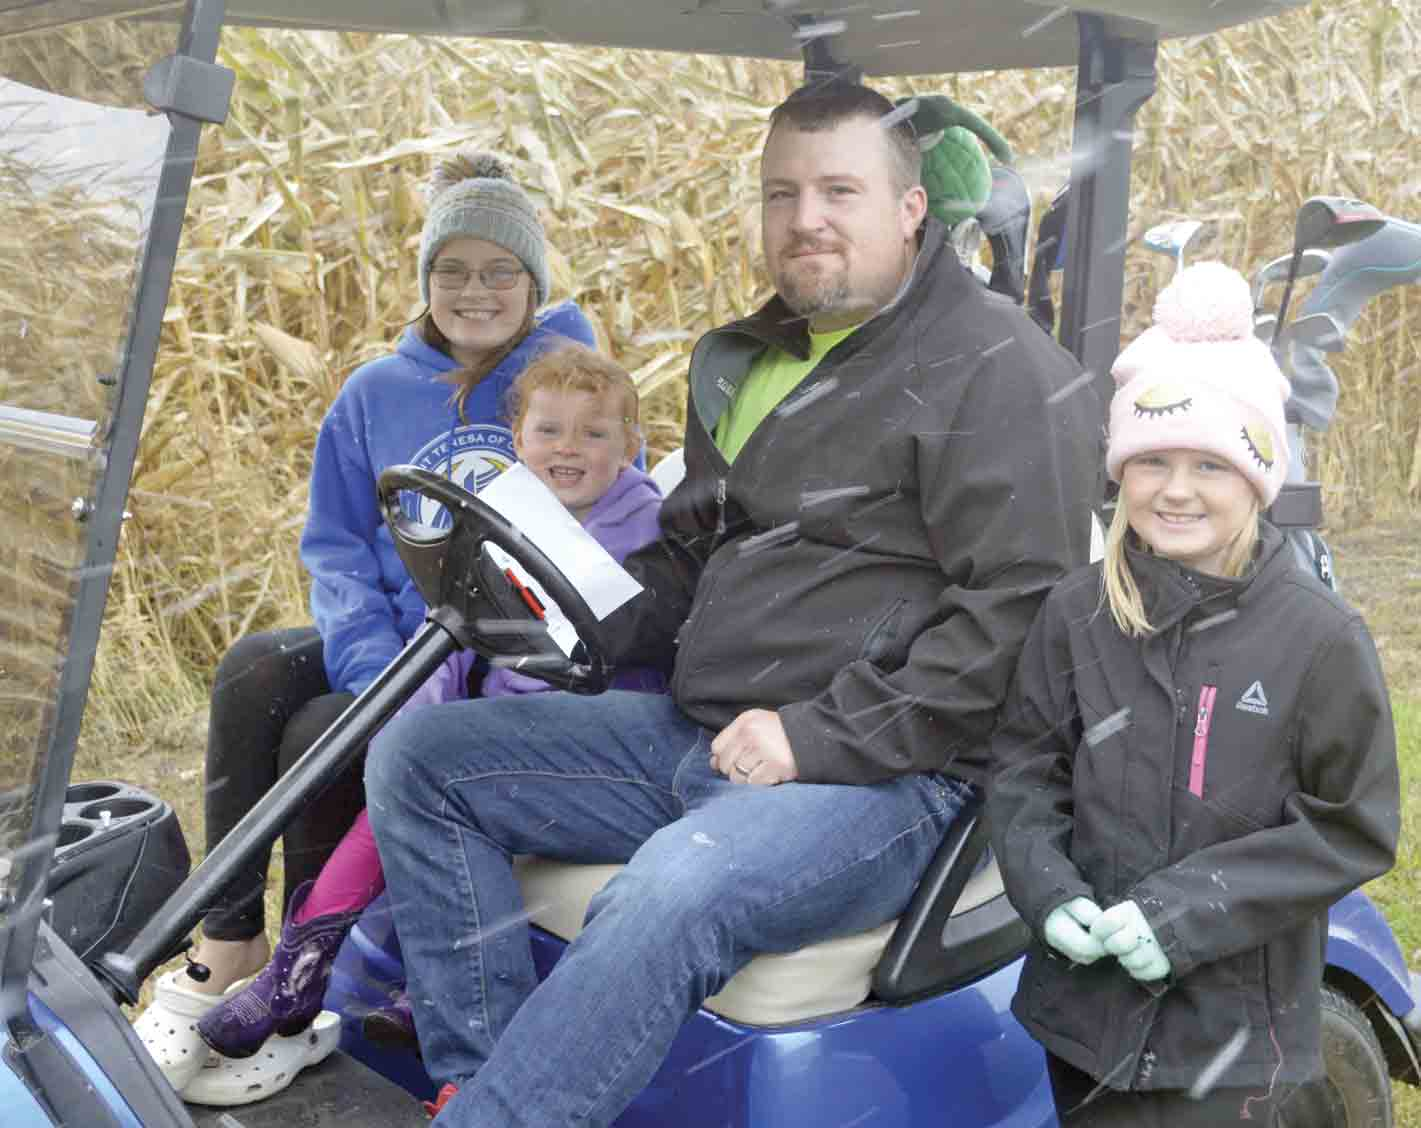 Mitch Holthaus and his family, including daughters (l-r) Alyssa, Ella, and Jadyn, plans to take advantage of the new Ossian ordinance that will allow golf carts and UTVs on City streets next year. (Zakary Kriener photo)Golf carts, UTVs soon to be allowed in OssianZakary KrienerNews...